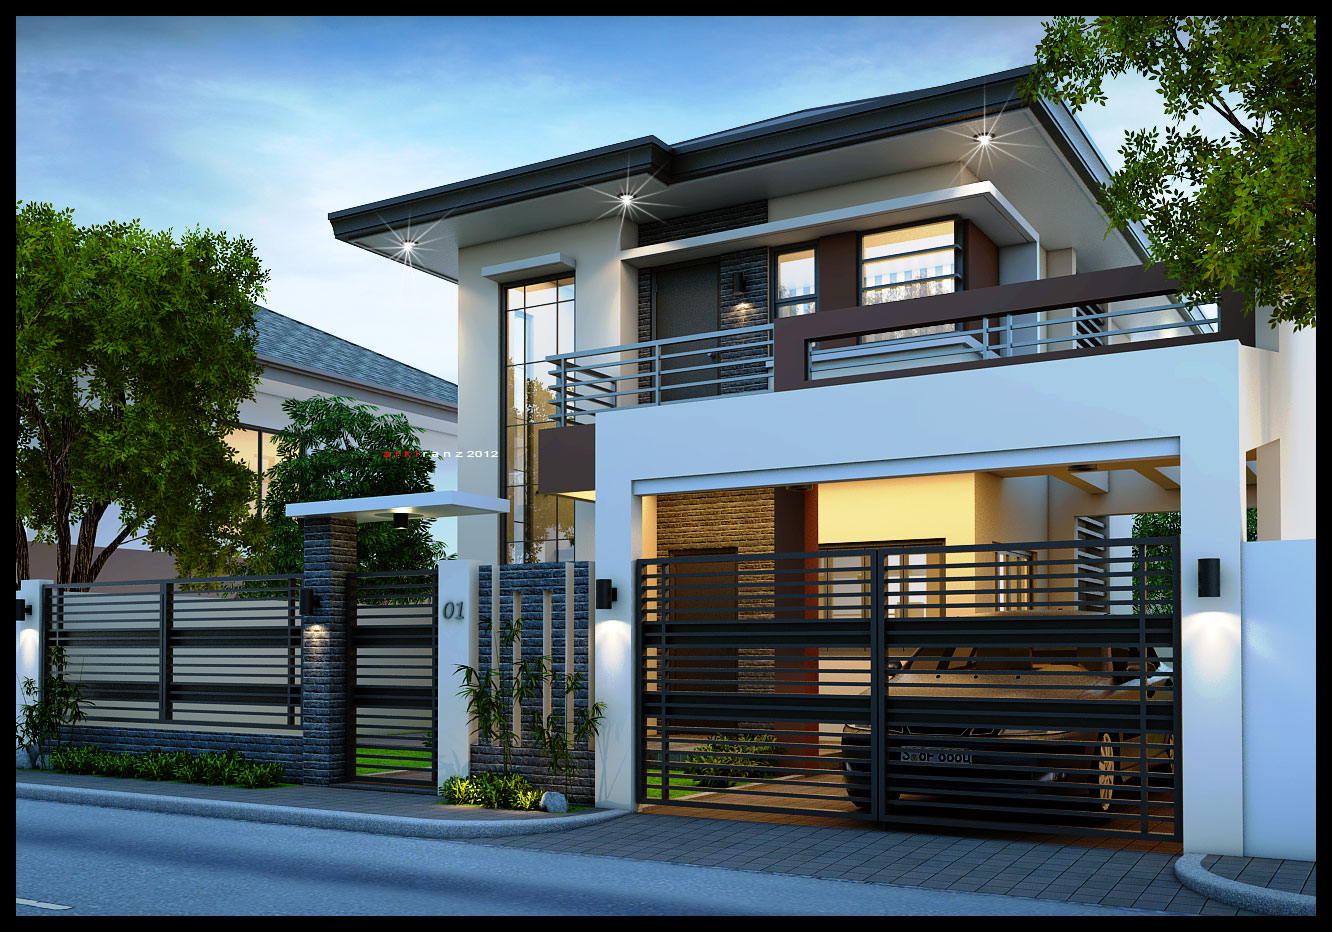 2 storey - 25+ Modern Two Story Small House Designs Images